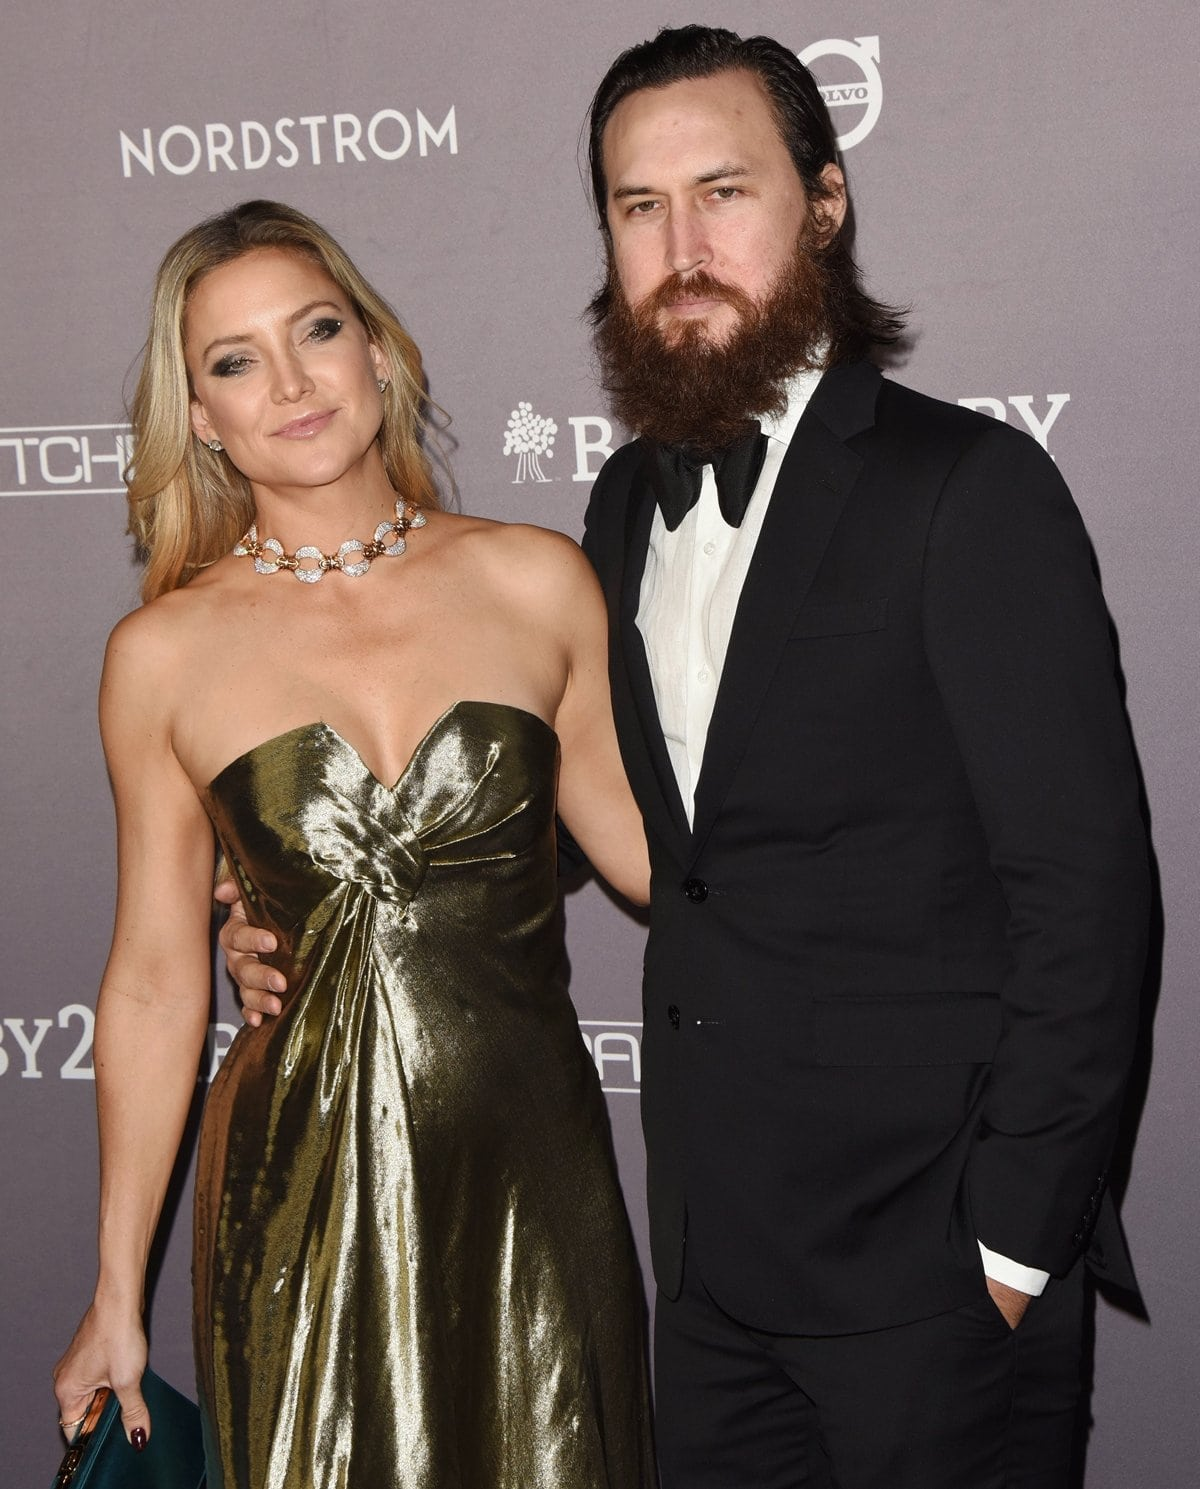 Kate Hudson and Danny Fujikawa announced their engagement in September 2021 after five years of dating